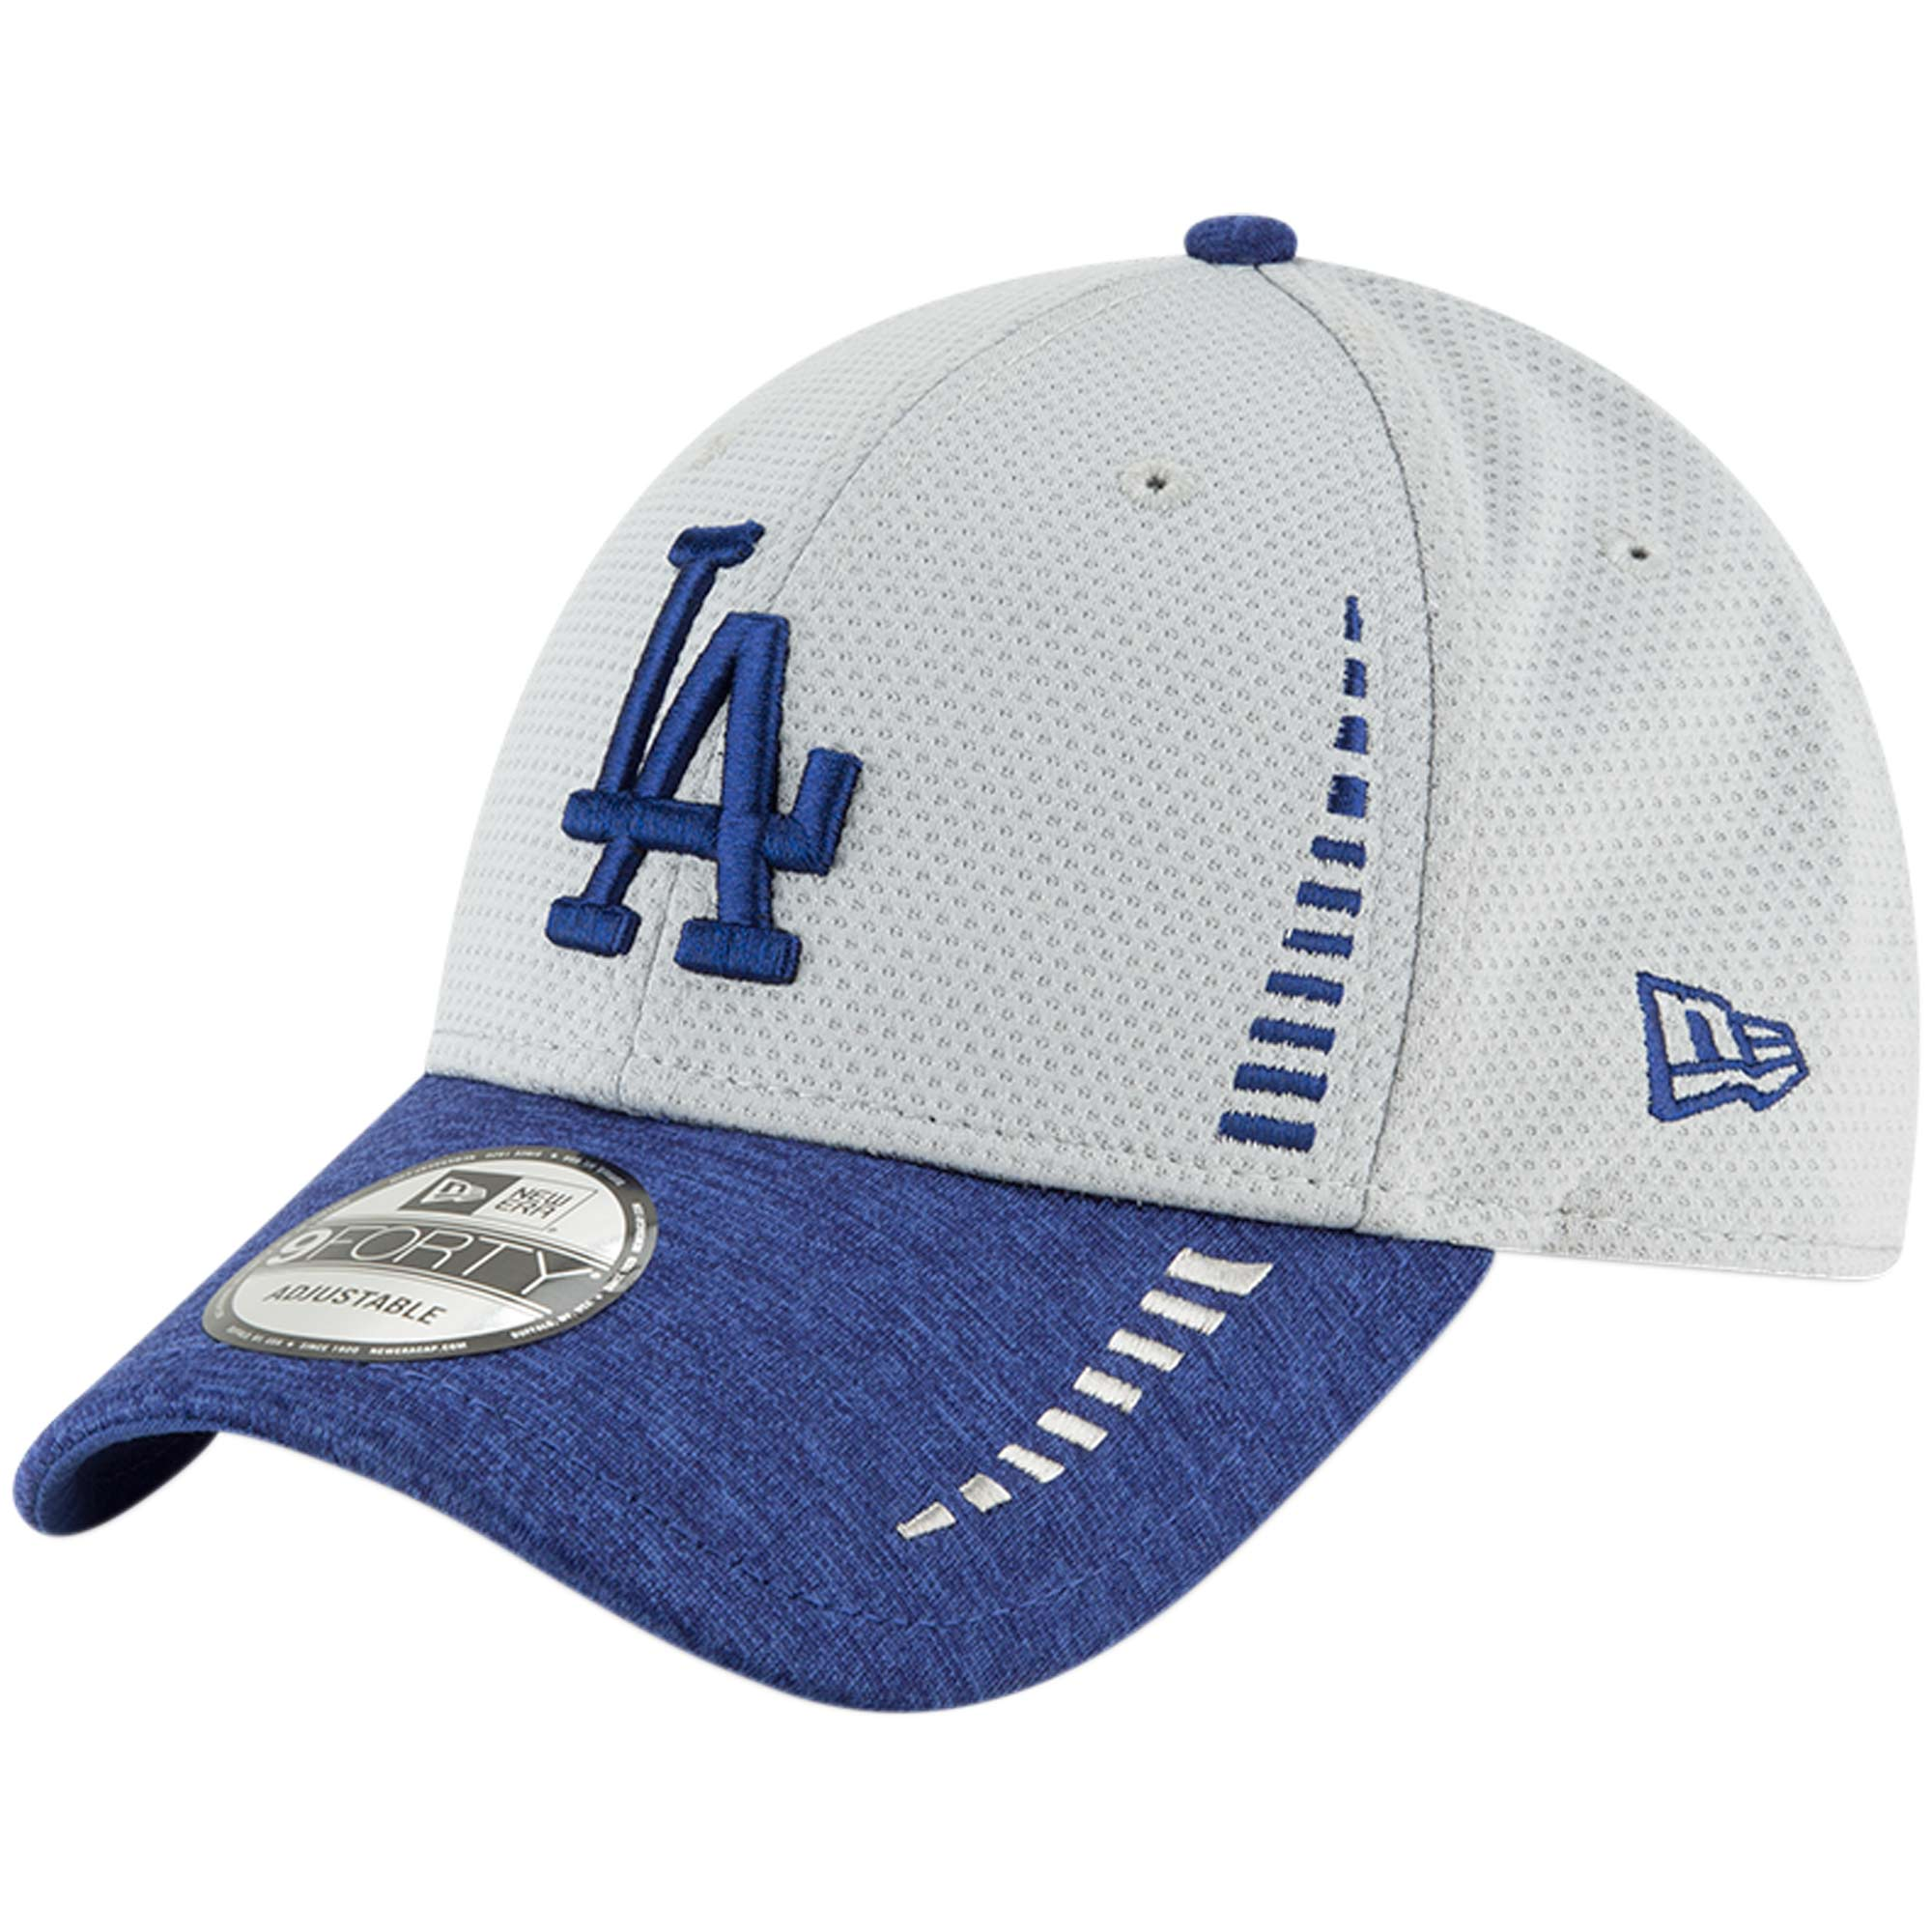 authentic los angeles dodgers beanie coffee 5f789 ae5bd 319ba9080191